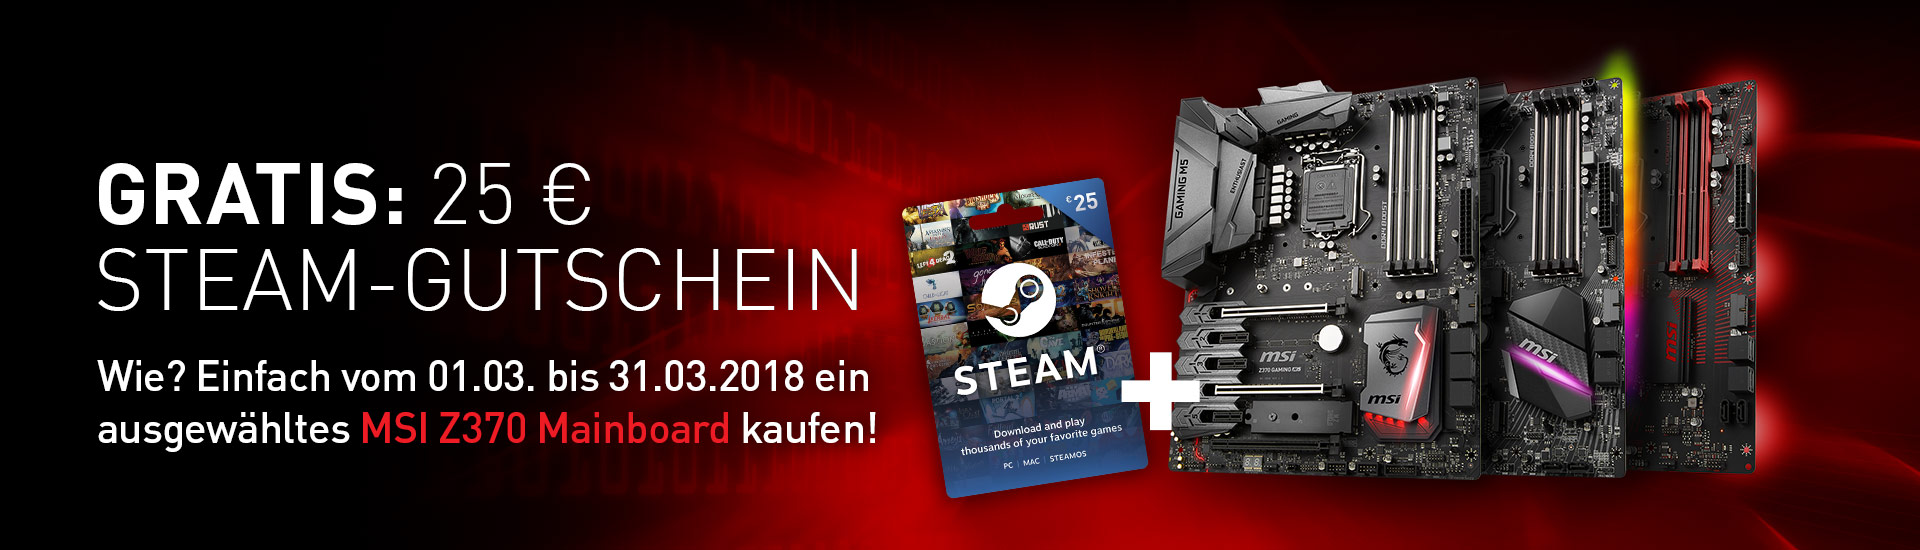 0317_MB+Steam_Gutschein